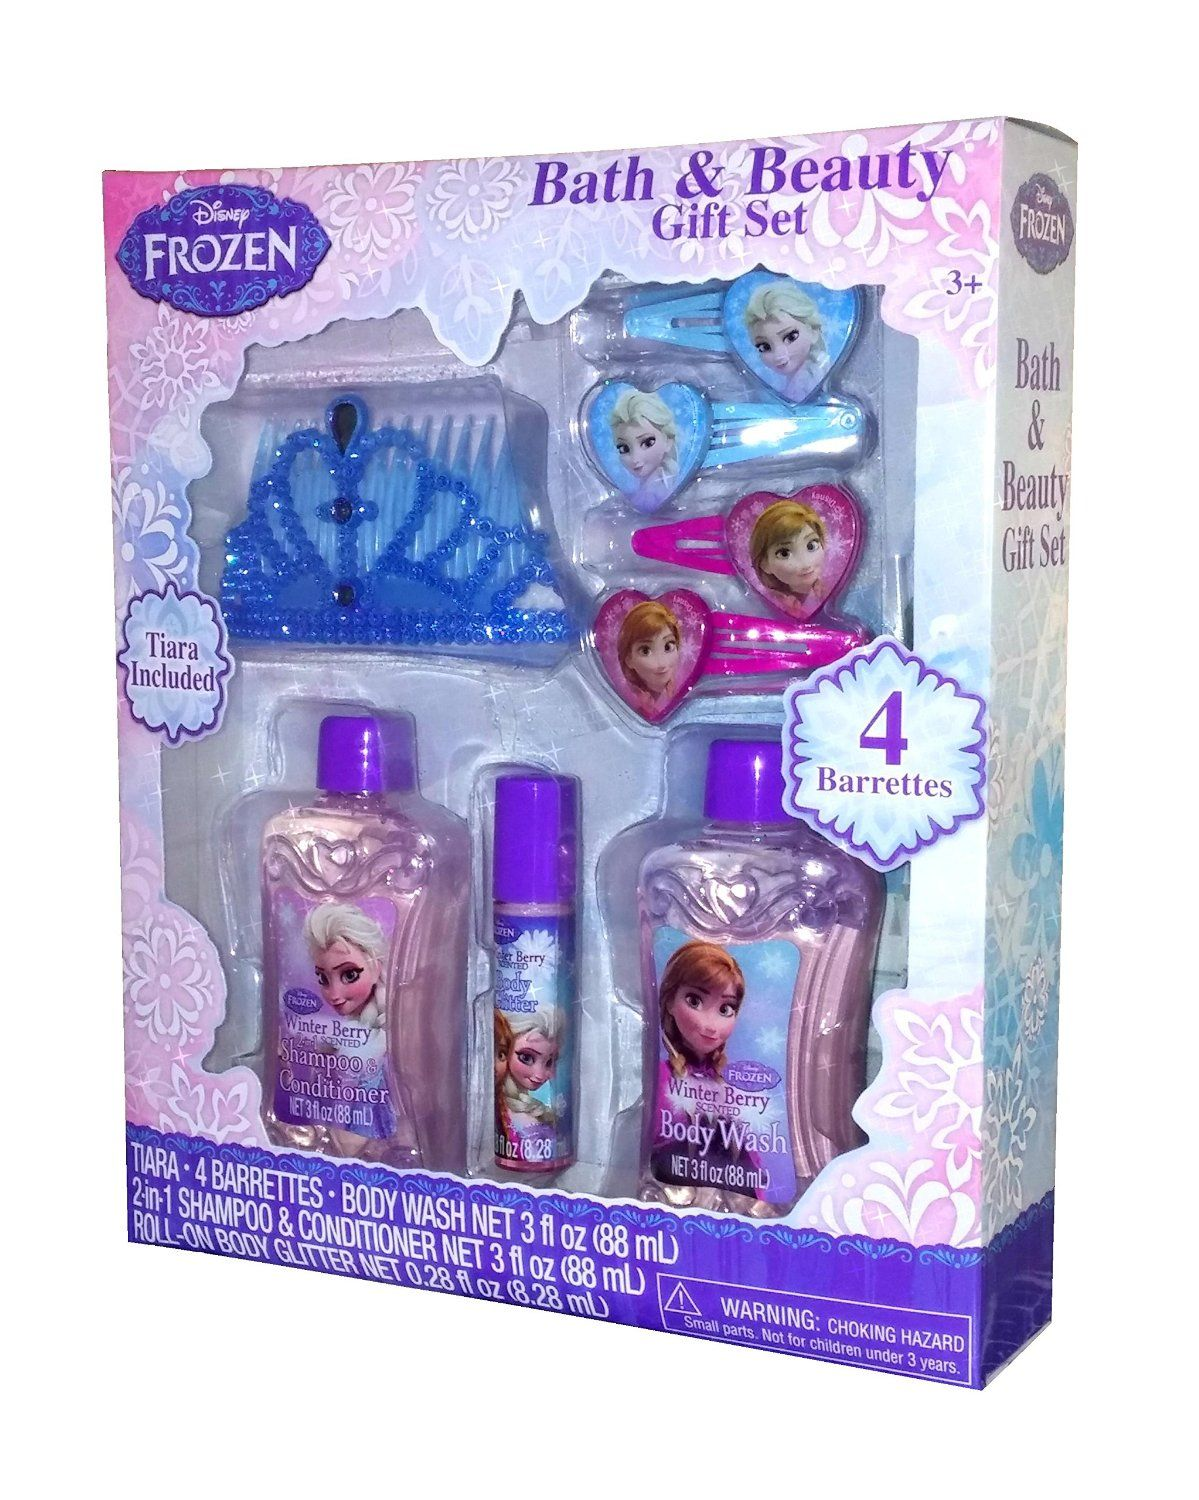 Disney's Frozen Bath & Beauty Gift Set allows your little one to ...